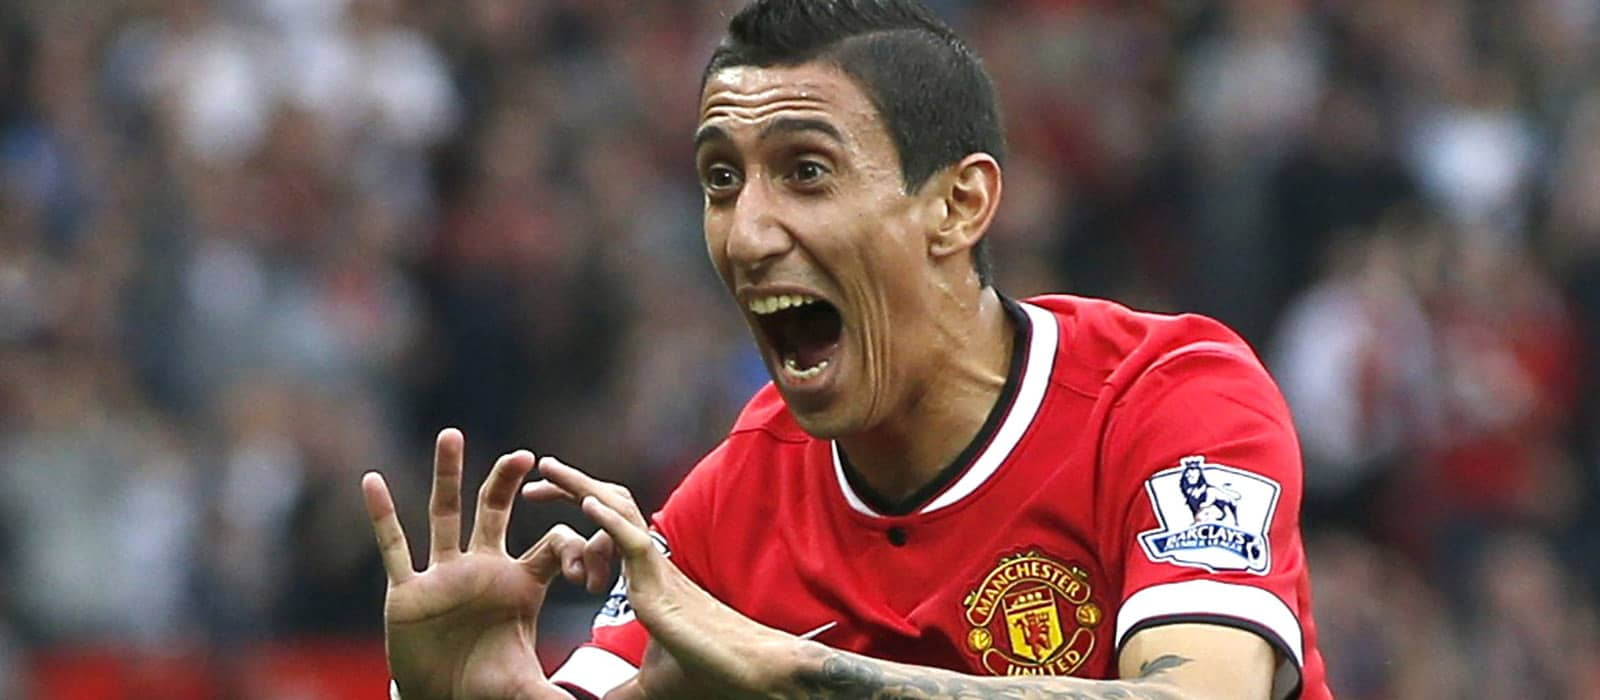 Angel Di Maria hates Man United, teammate claims